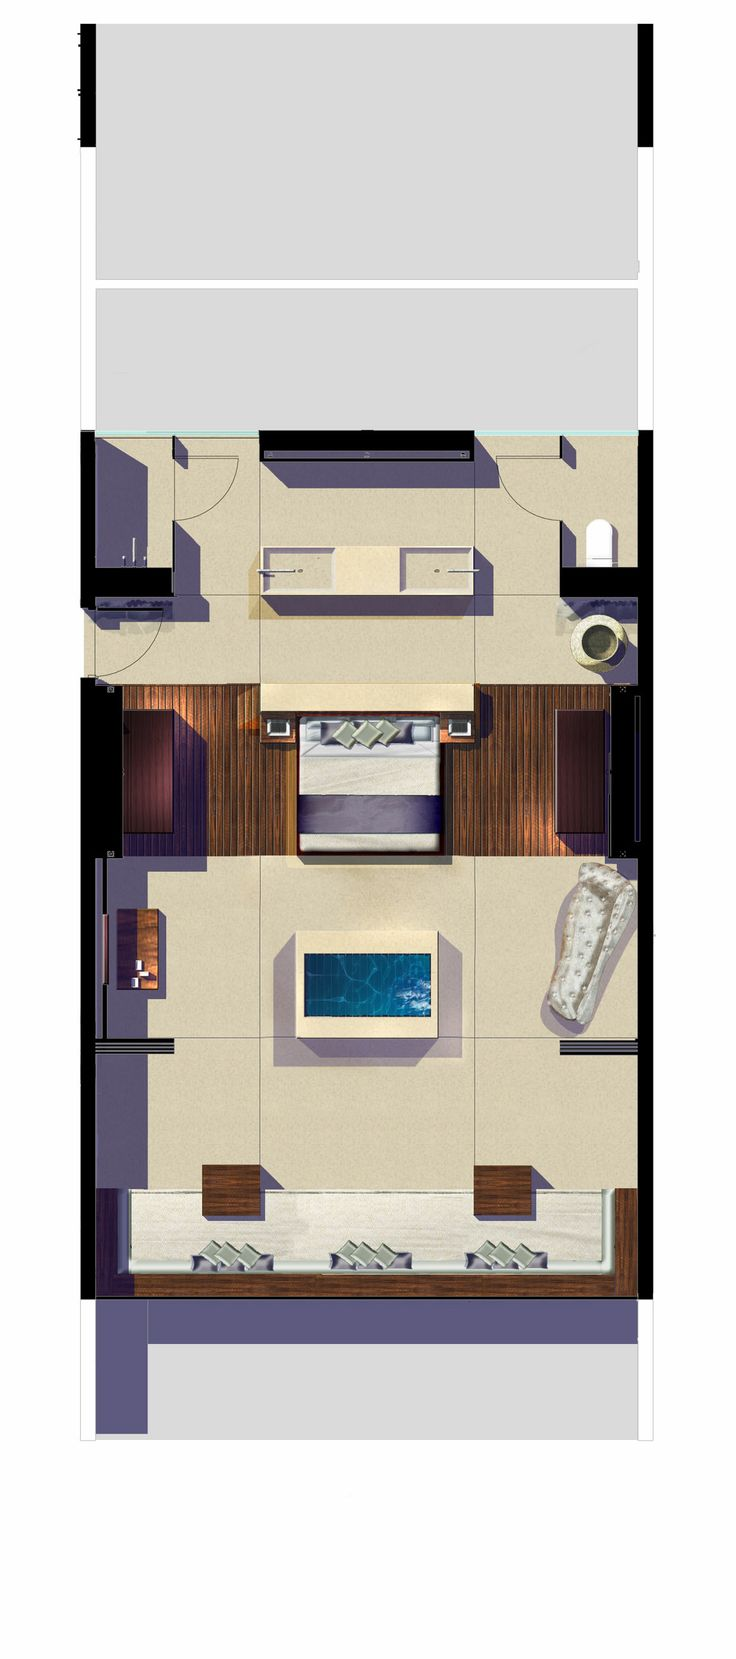 Hotel Room Floor Plan: 1000+ Images About Hotel Plans On Pinterest